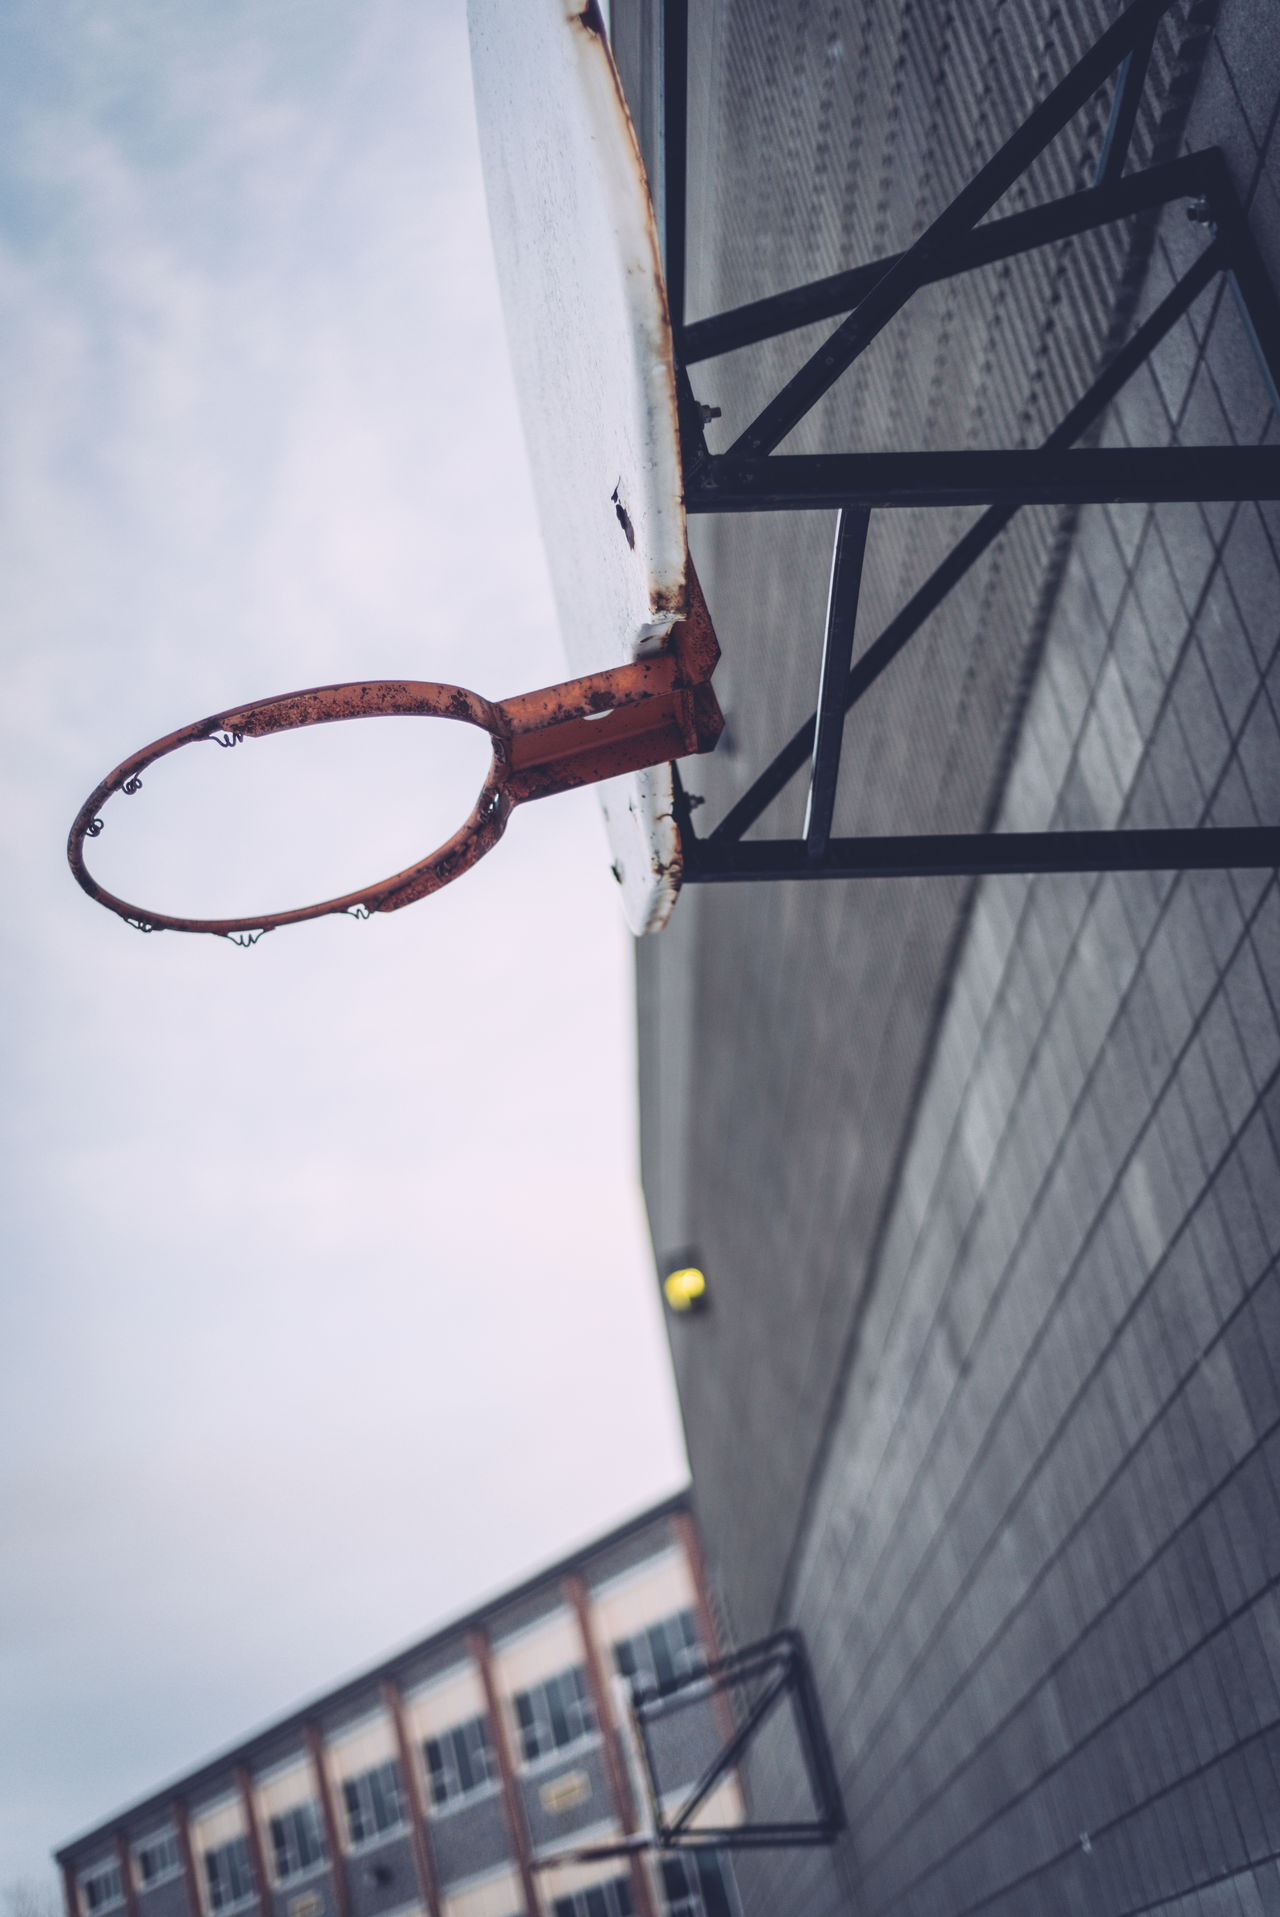 Angled Wall Basketball Net  Basketball Rim Close-up Cloud - Sky Day Low Angle View No People Outdoors School Schoolyard Sky